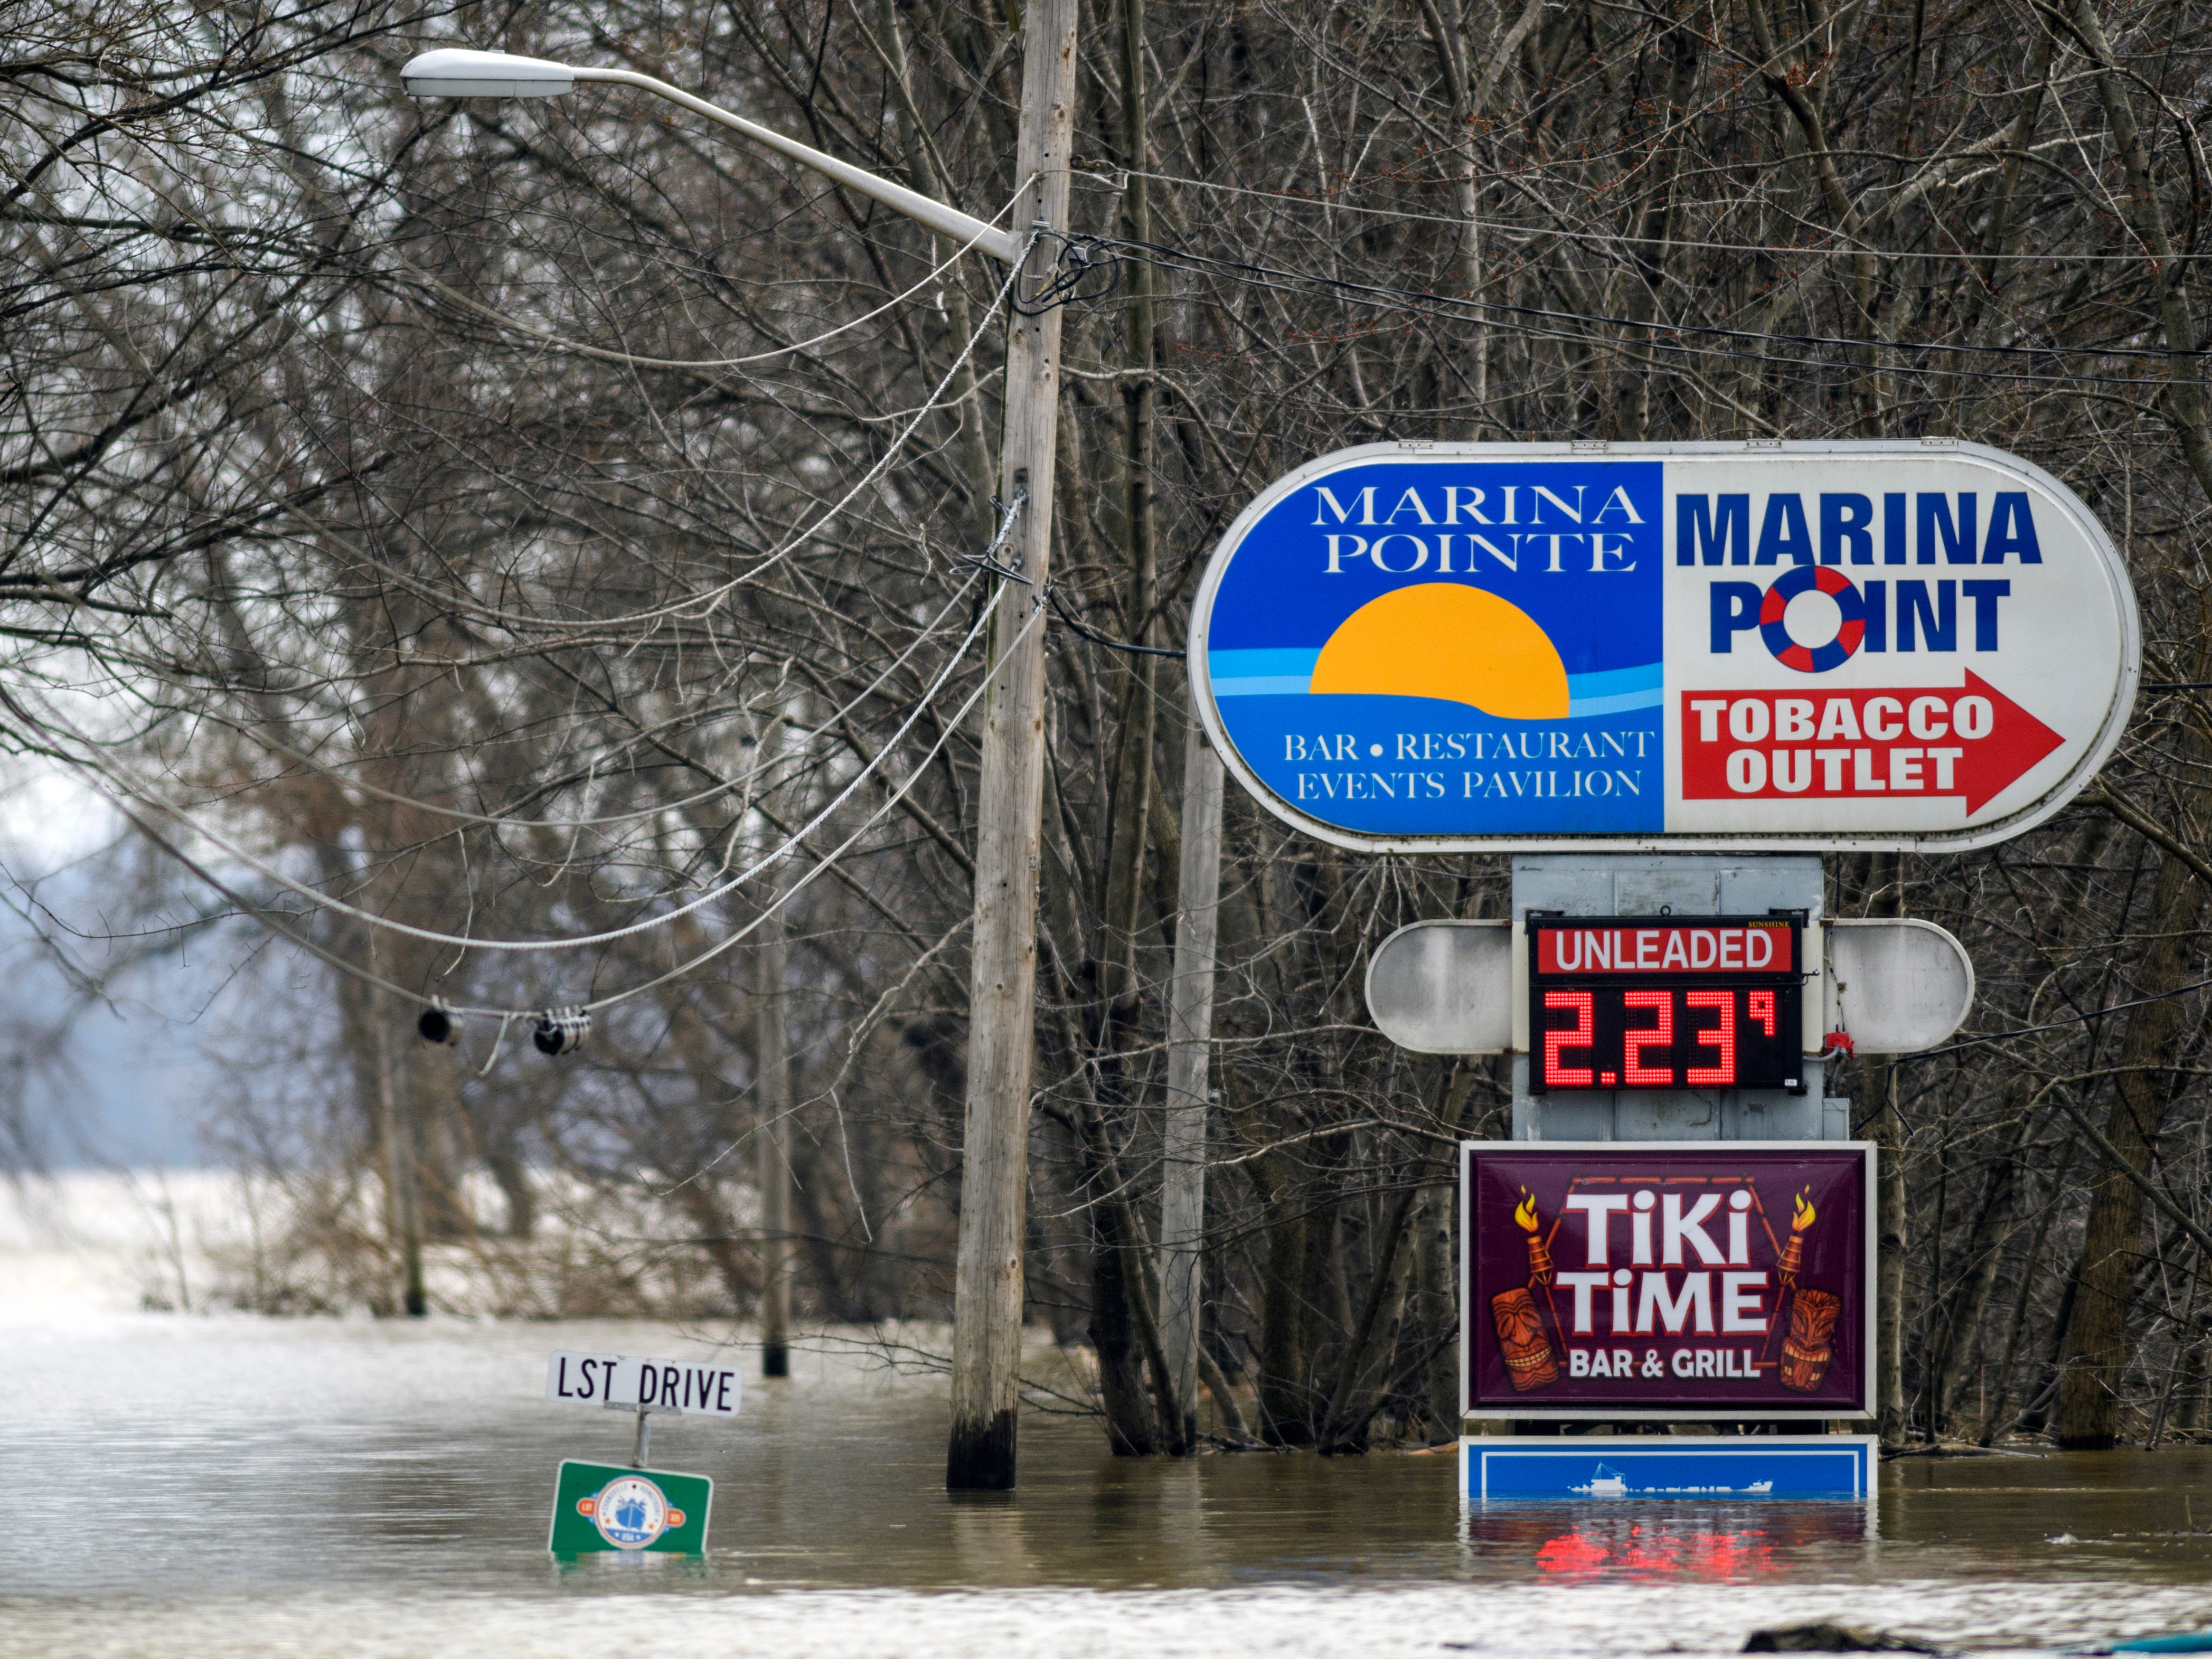 High water covers Waterworks Road near the intersection of LST Drive in Evansville, Ind., Tuesday afternoon, Feb. 19, 2019.